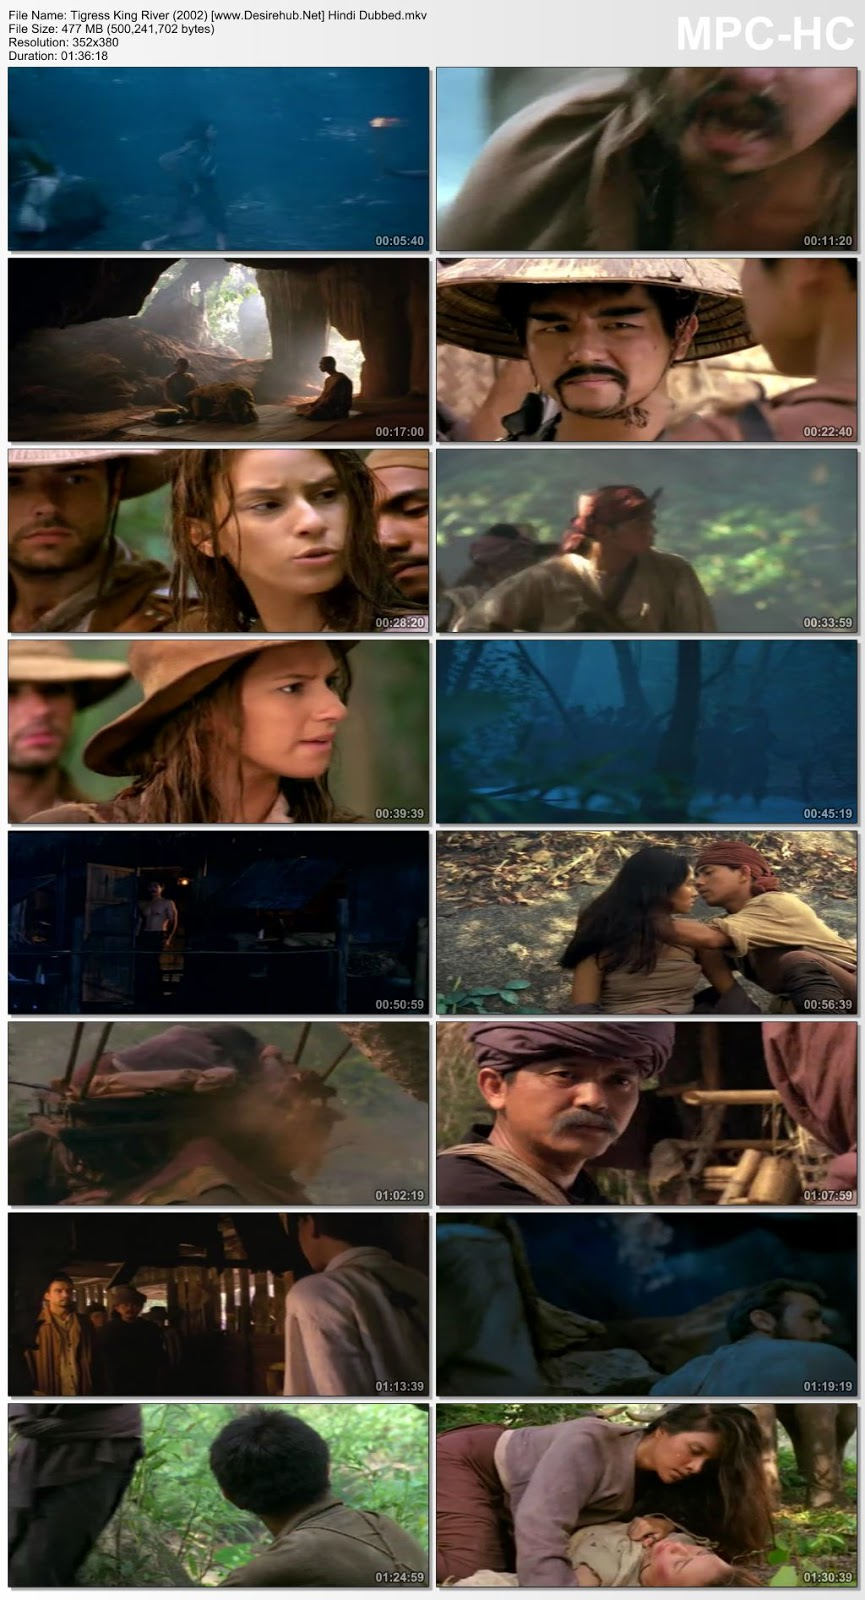 Tigress of King River (2002) 480p Dual Audio – 400MB Desirehub